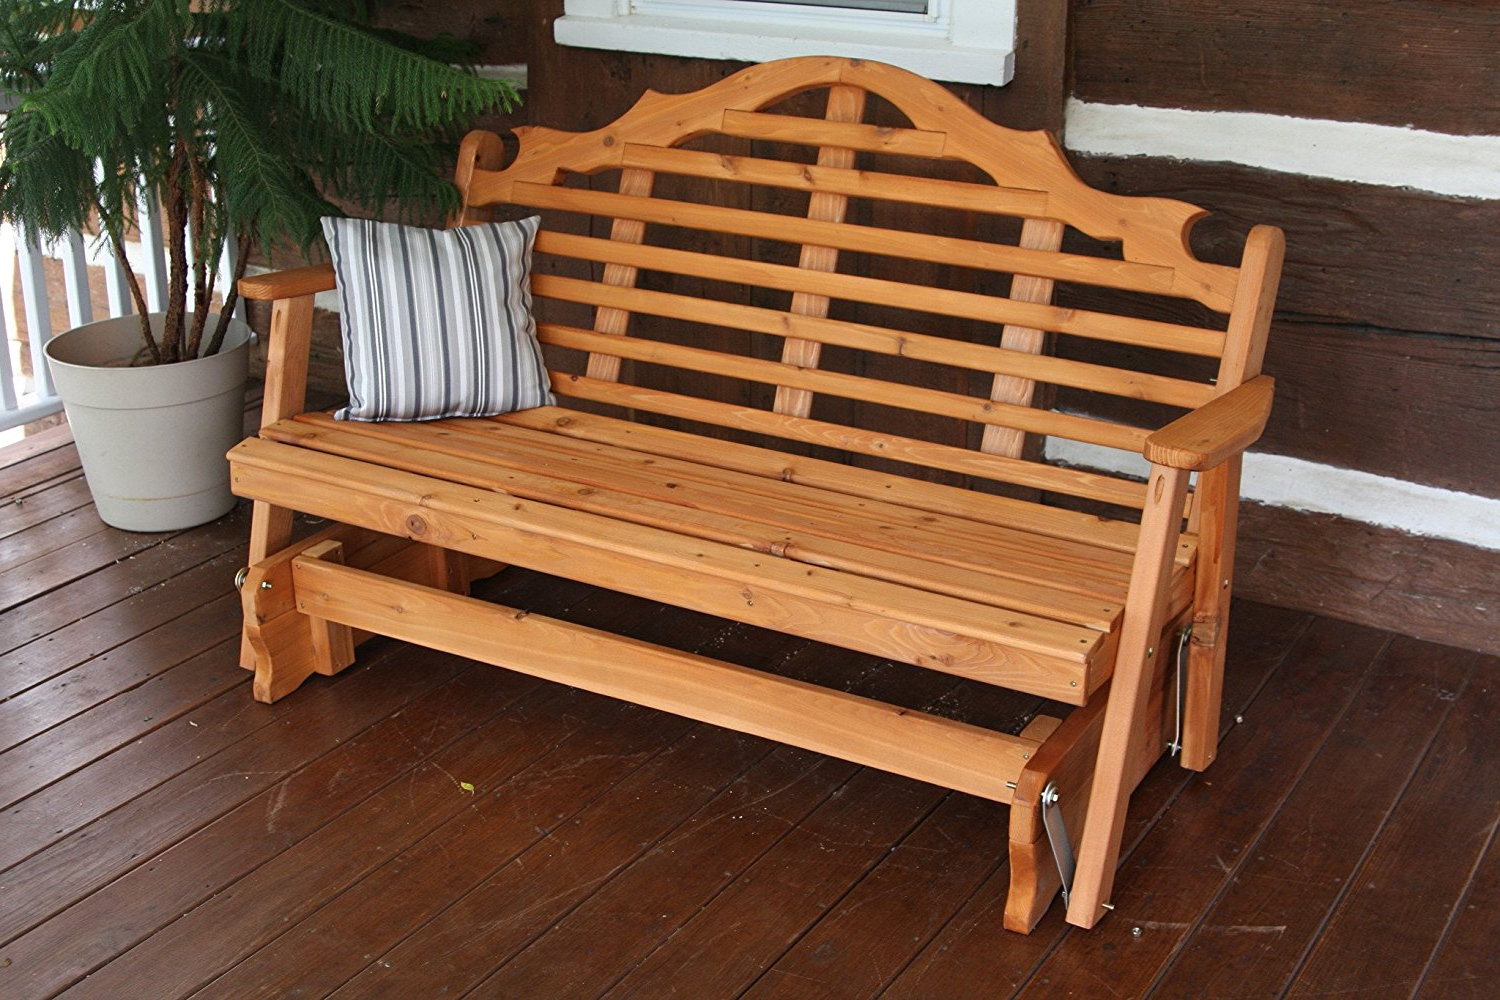 Popular Cheap Western Furniture For Sale, Find Western Furniture For With Regard To Traditional English Glider Benches (View 22 of 34)